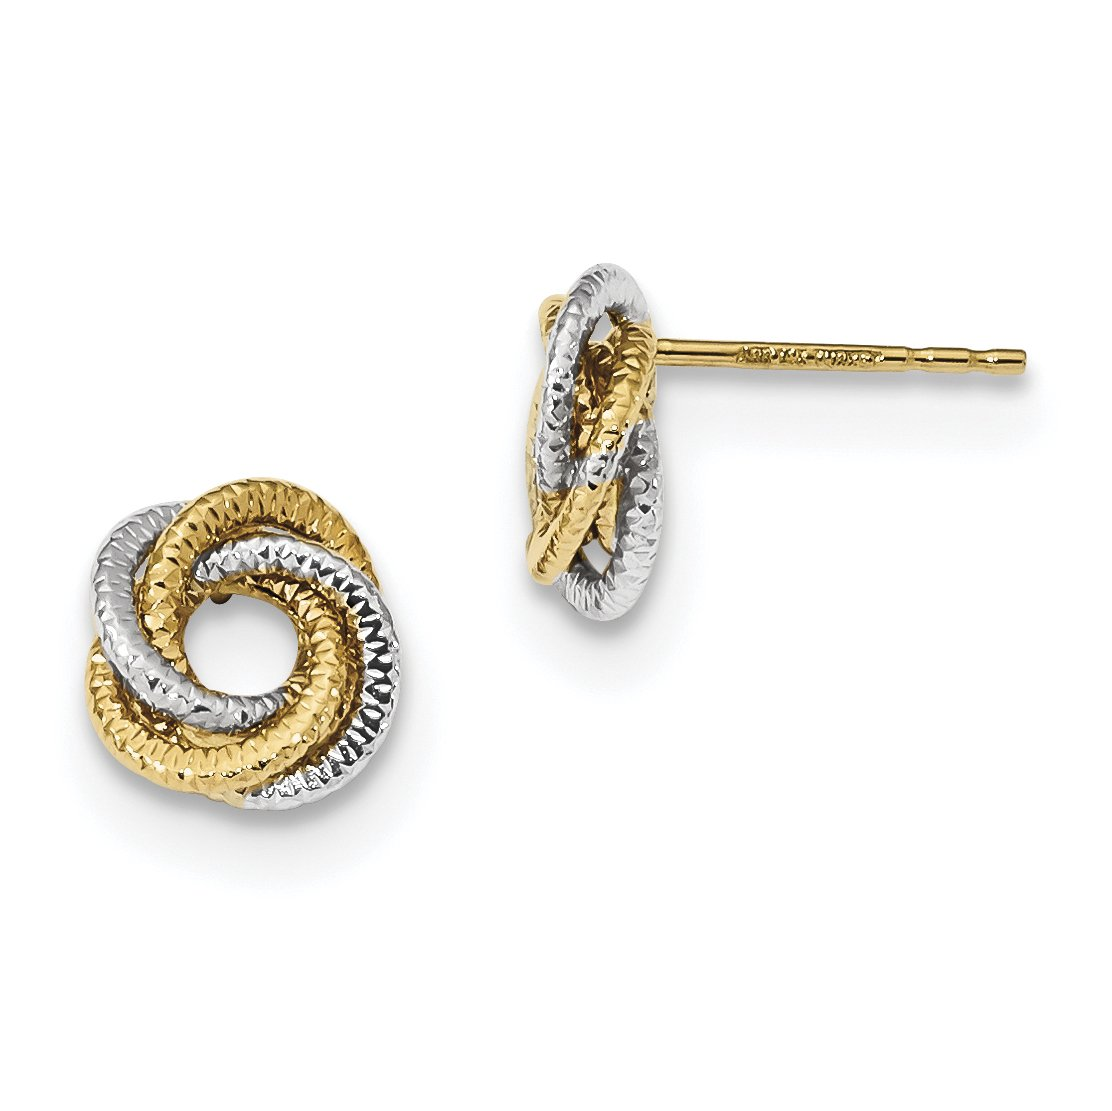 ICE CARATS 14k Two Tone Yellow Gold Textured Love Knot Post Stud Ball Button Earrings Fine Jewelry Gift Set For Women Heart